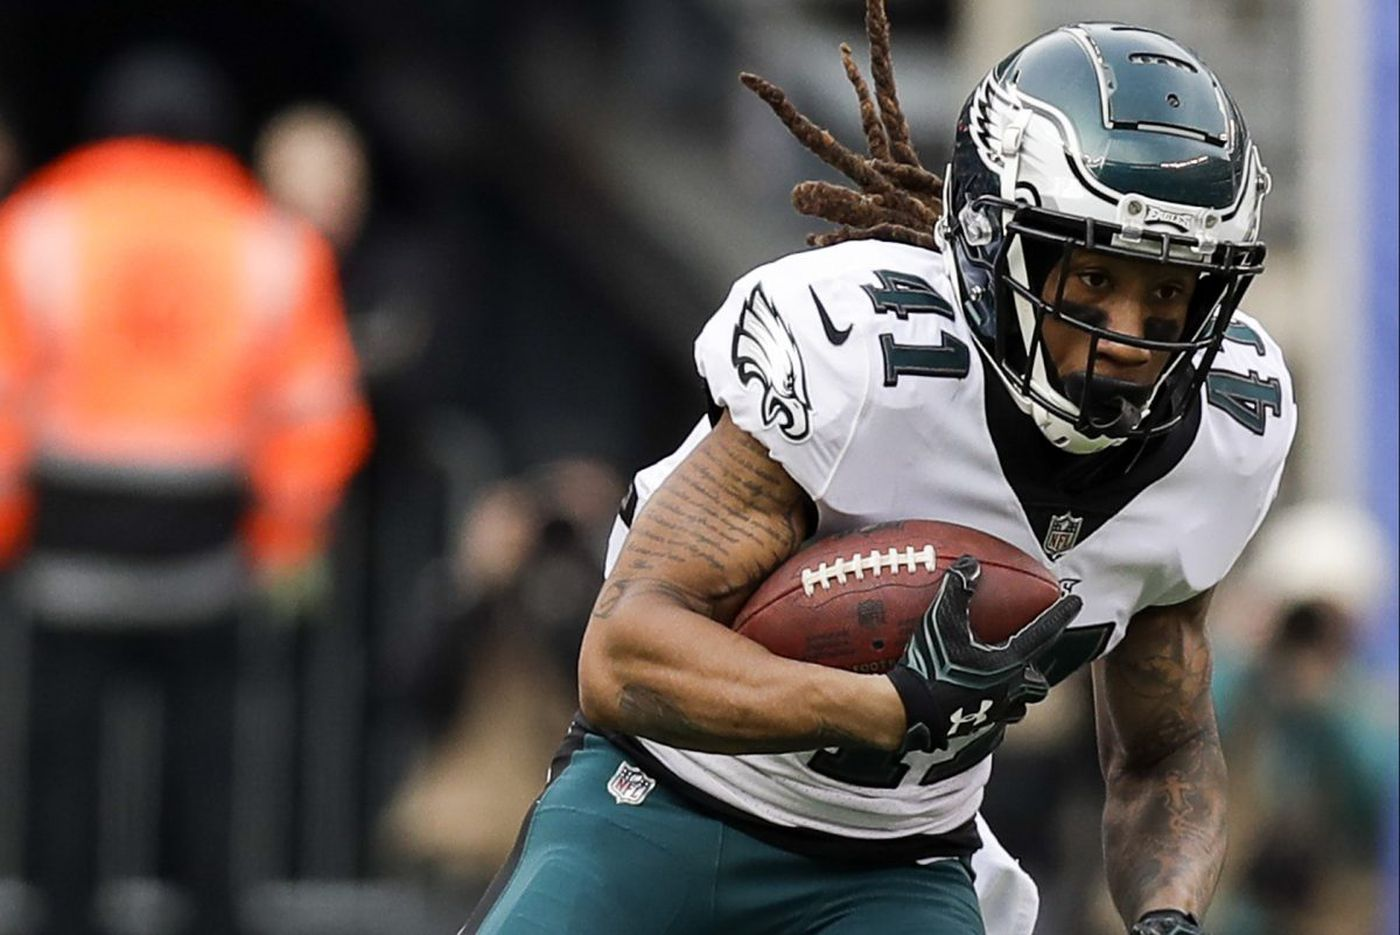 Eagles cornerback Ronald Darby doesn't defend Twitter blocks, recent performance